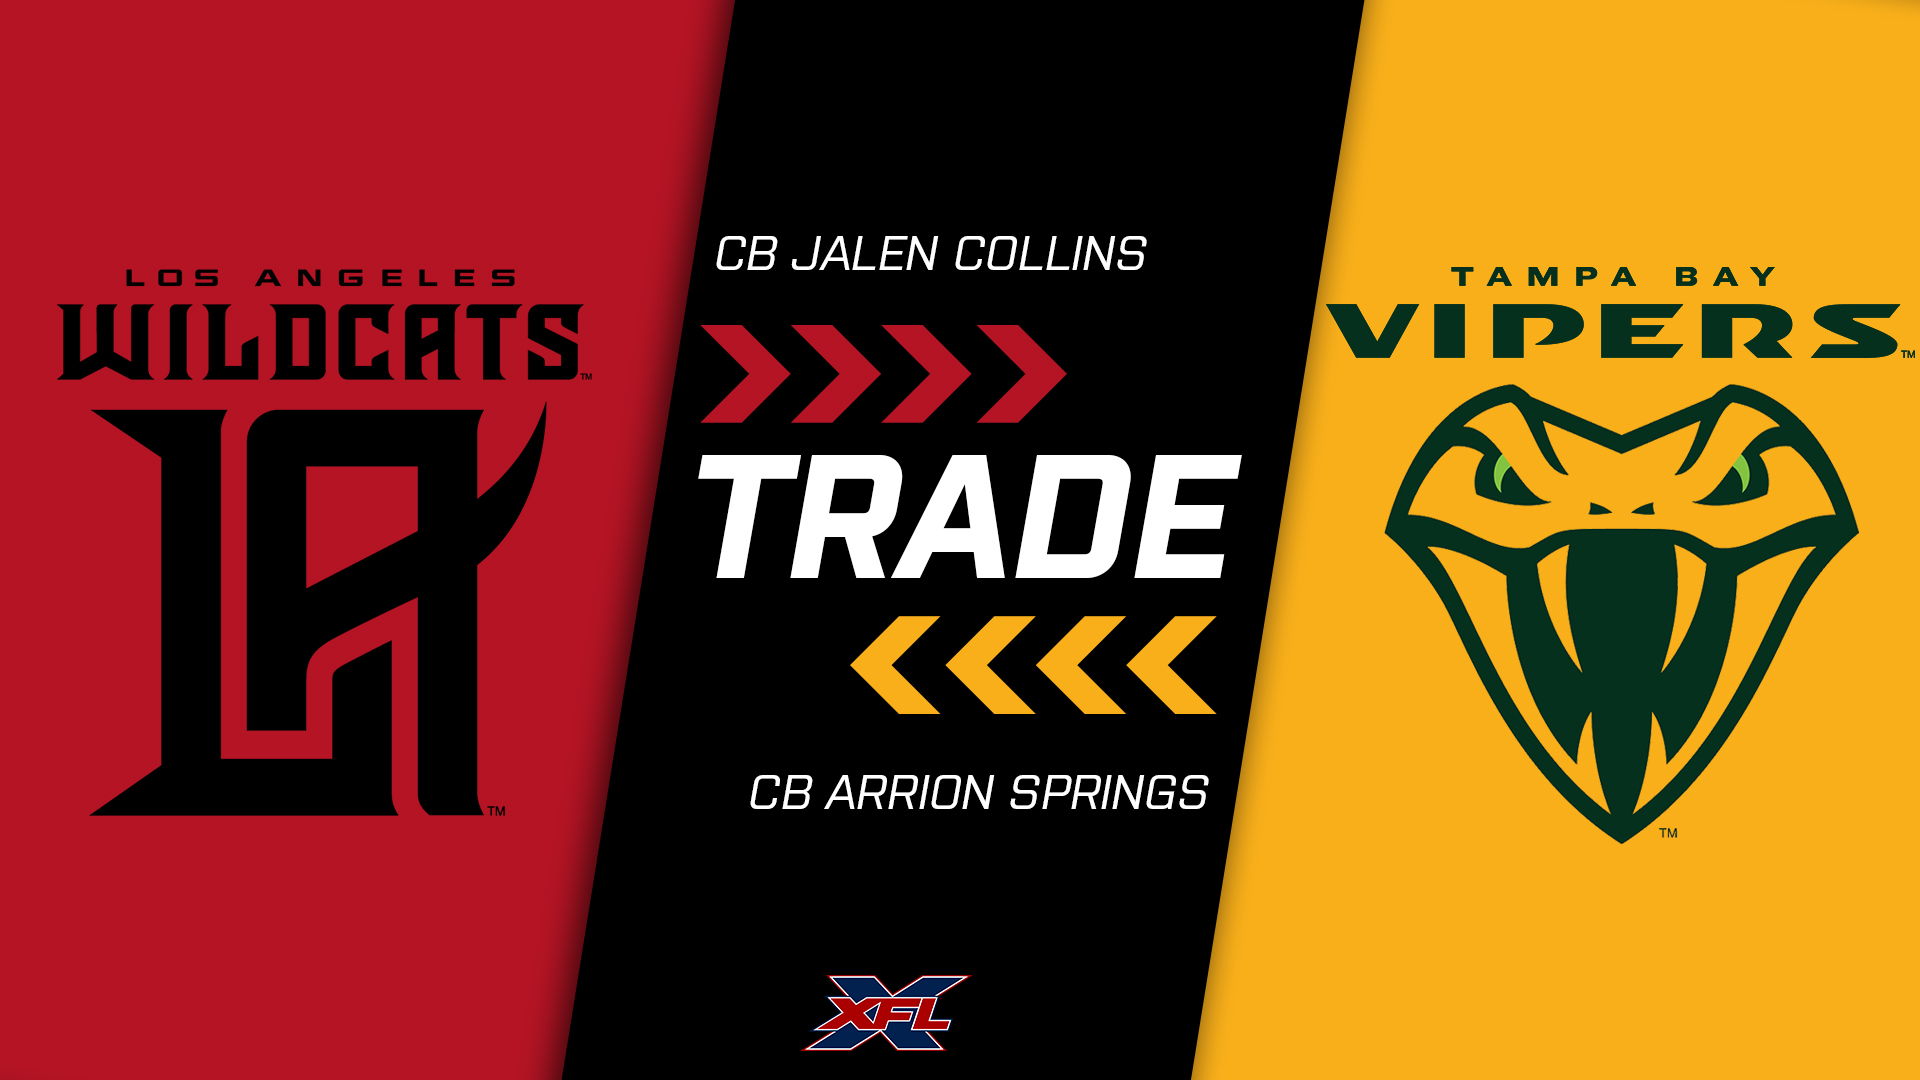 CB Jalen Collins to @XFLVipers; CB Arrion Springs to @XFLWildcats